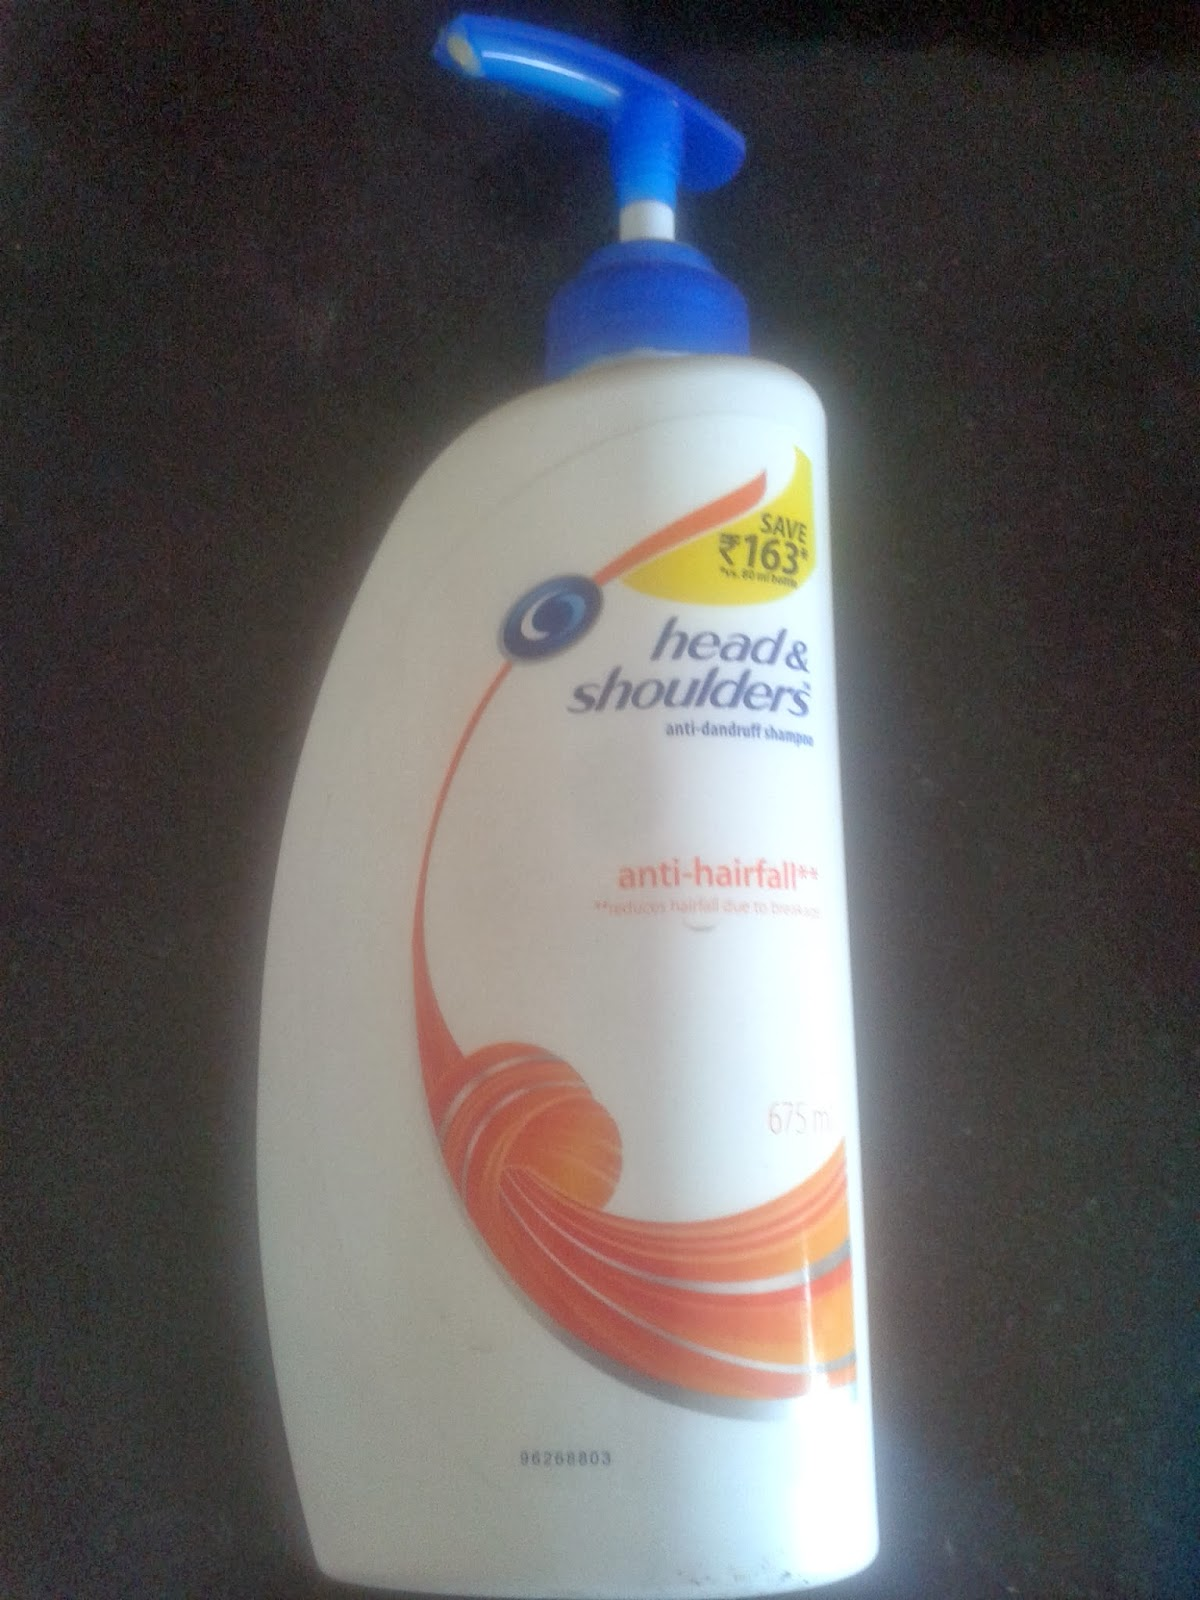 head and shoulders shampoo review, hairfall contrl shampoos, how to take care of long hair